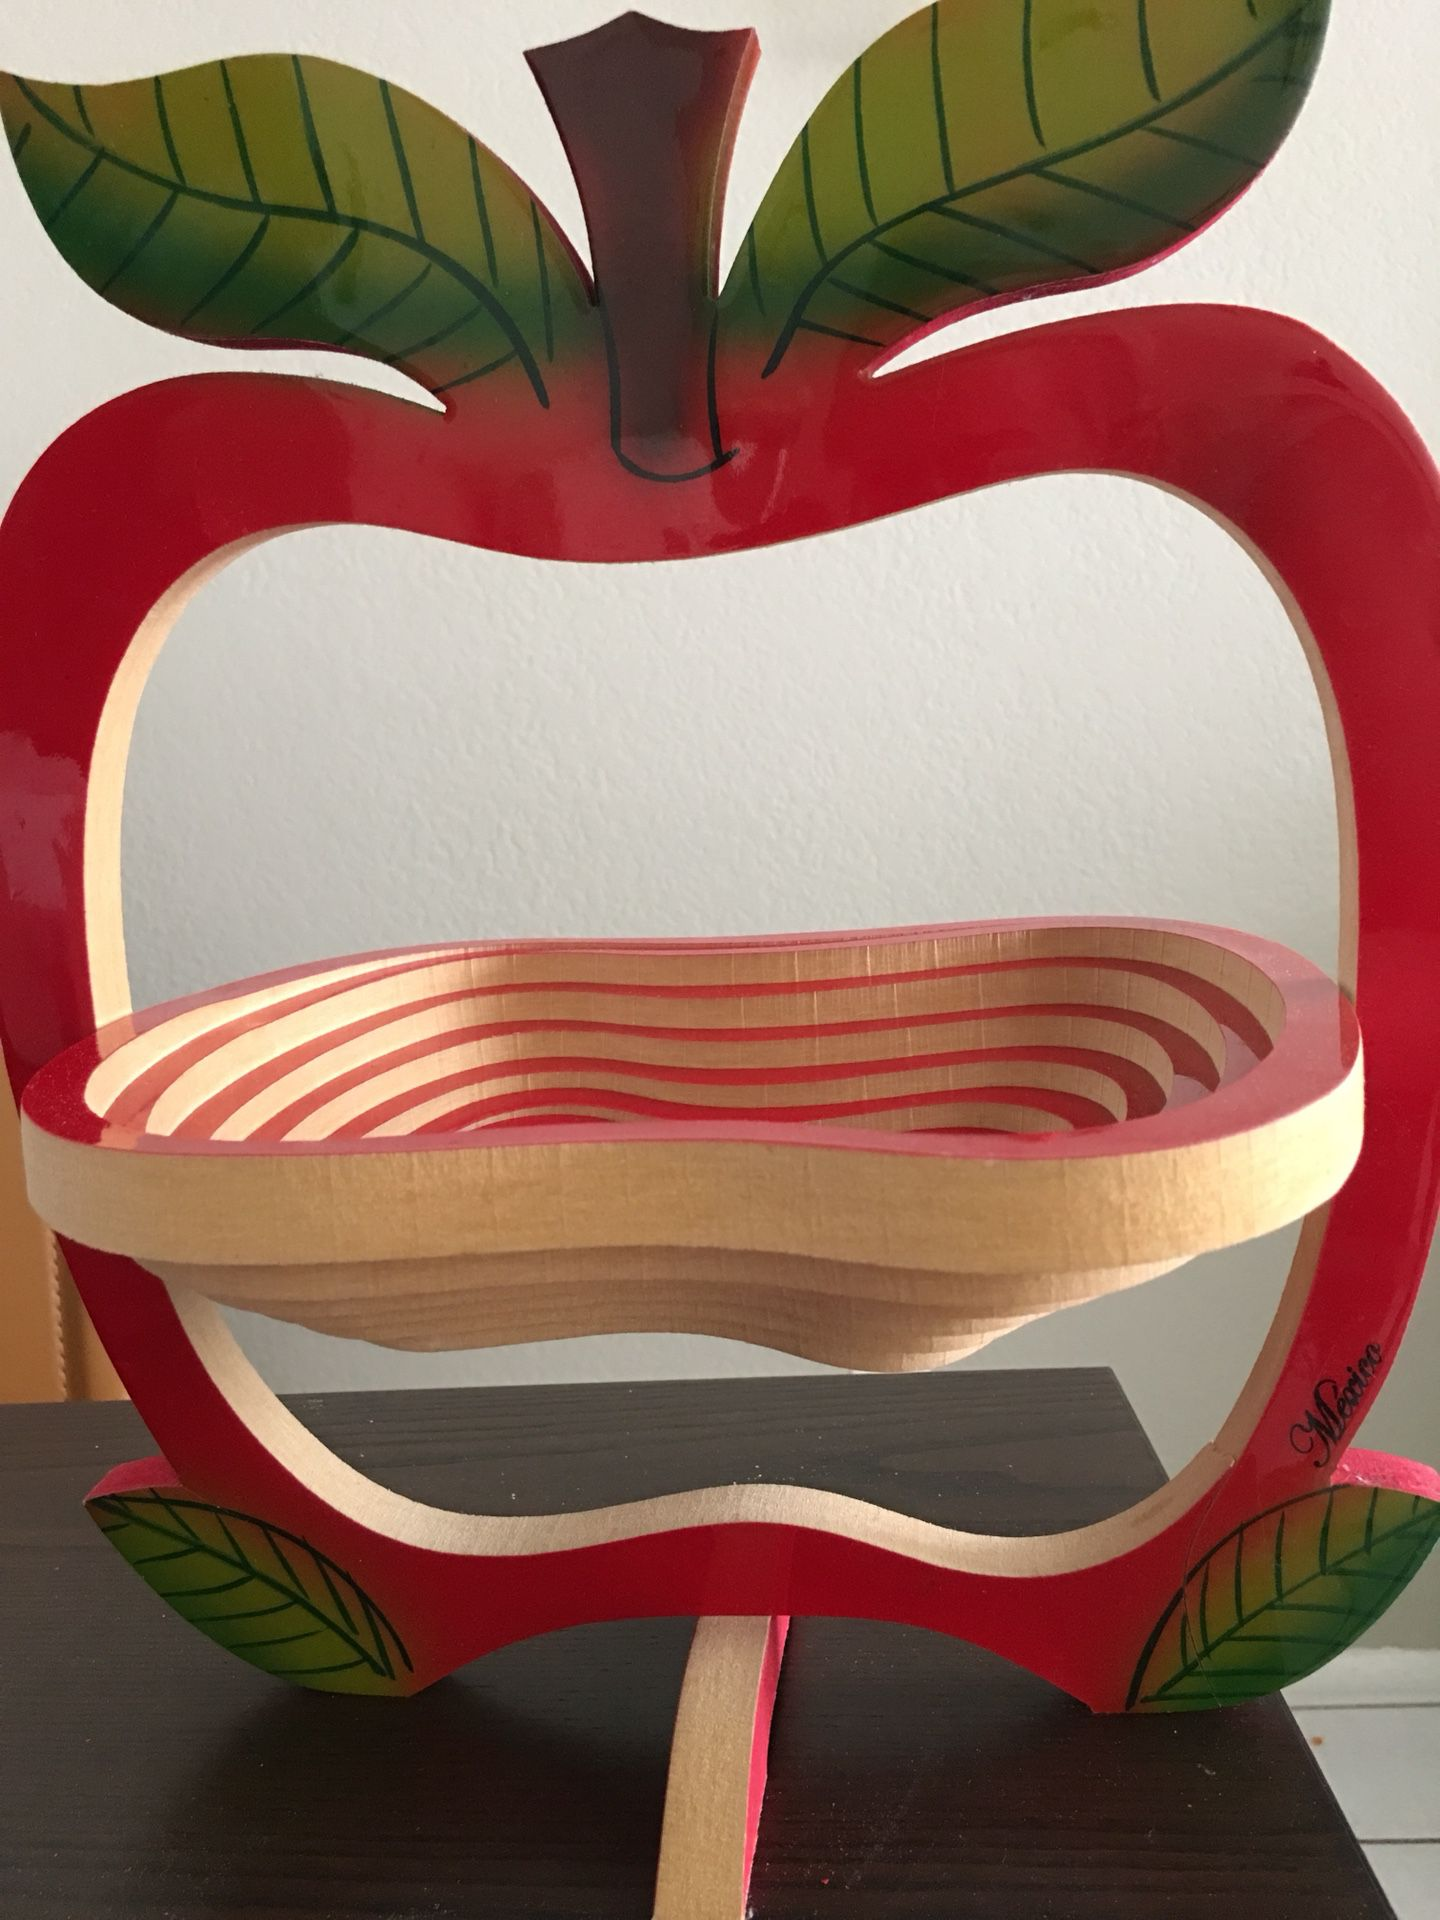 New red fruit basket or for different purpose handmade wood in mexico